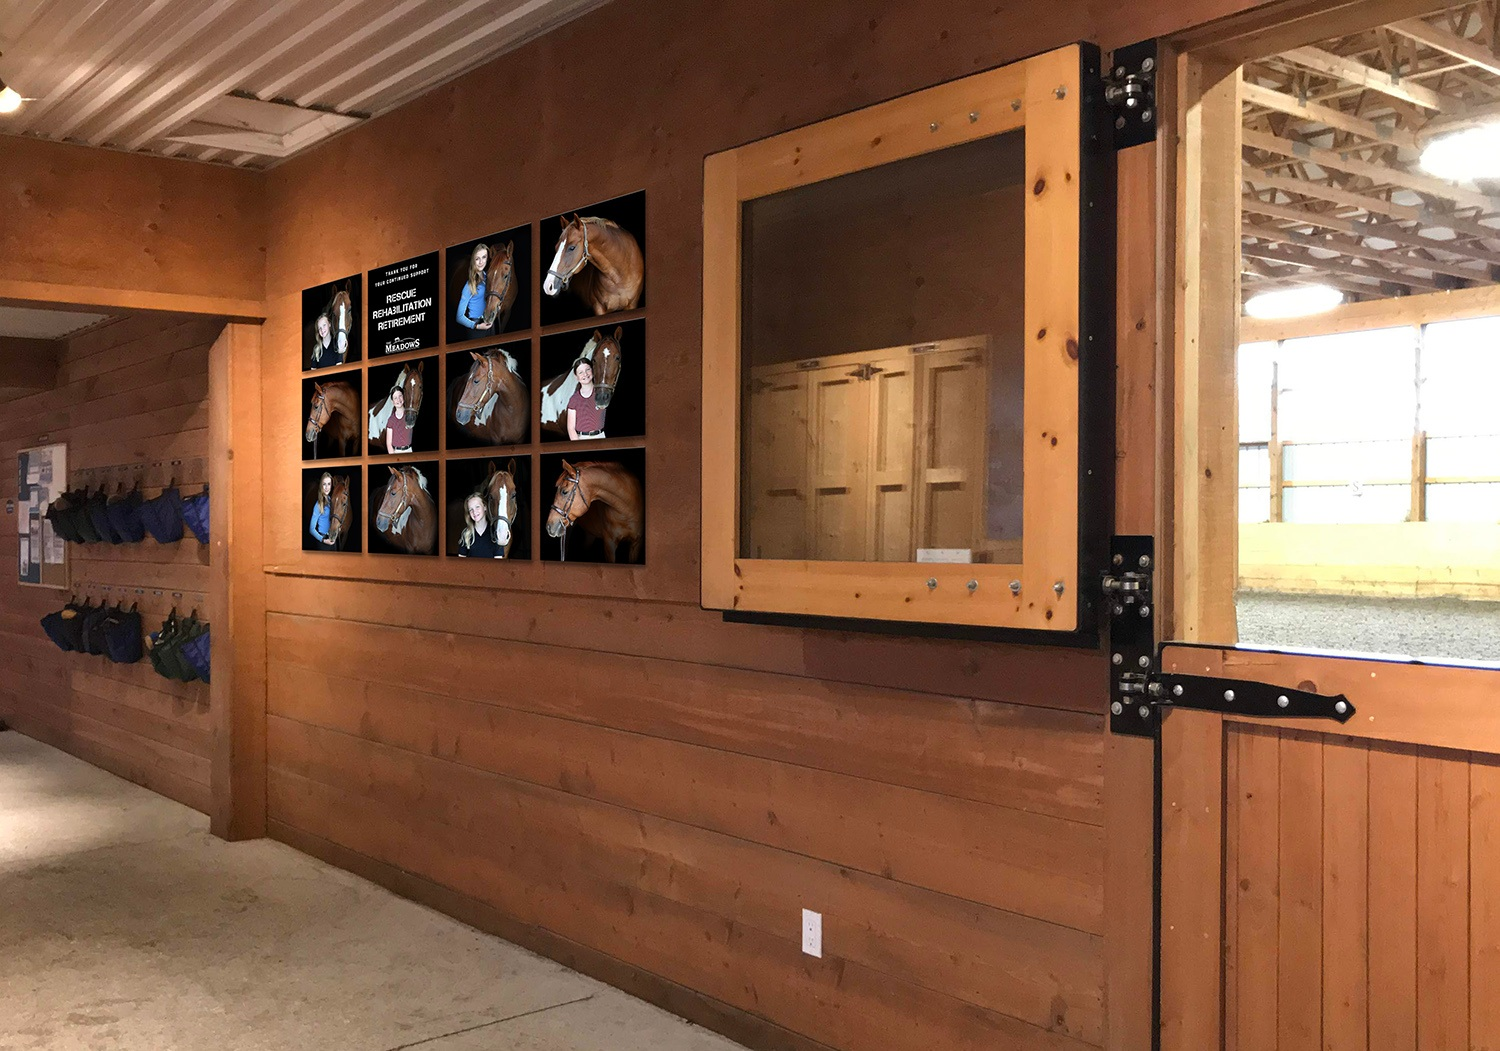 Newly-built Barn - Our dust-free barn is designed with extra ceiling height, wide aisles, and windows throughout to provide lots of natural light.All stalls and water buckets are sanitized daily to ensure a healthy, infection free facility.